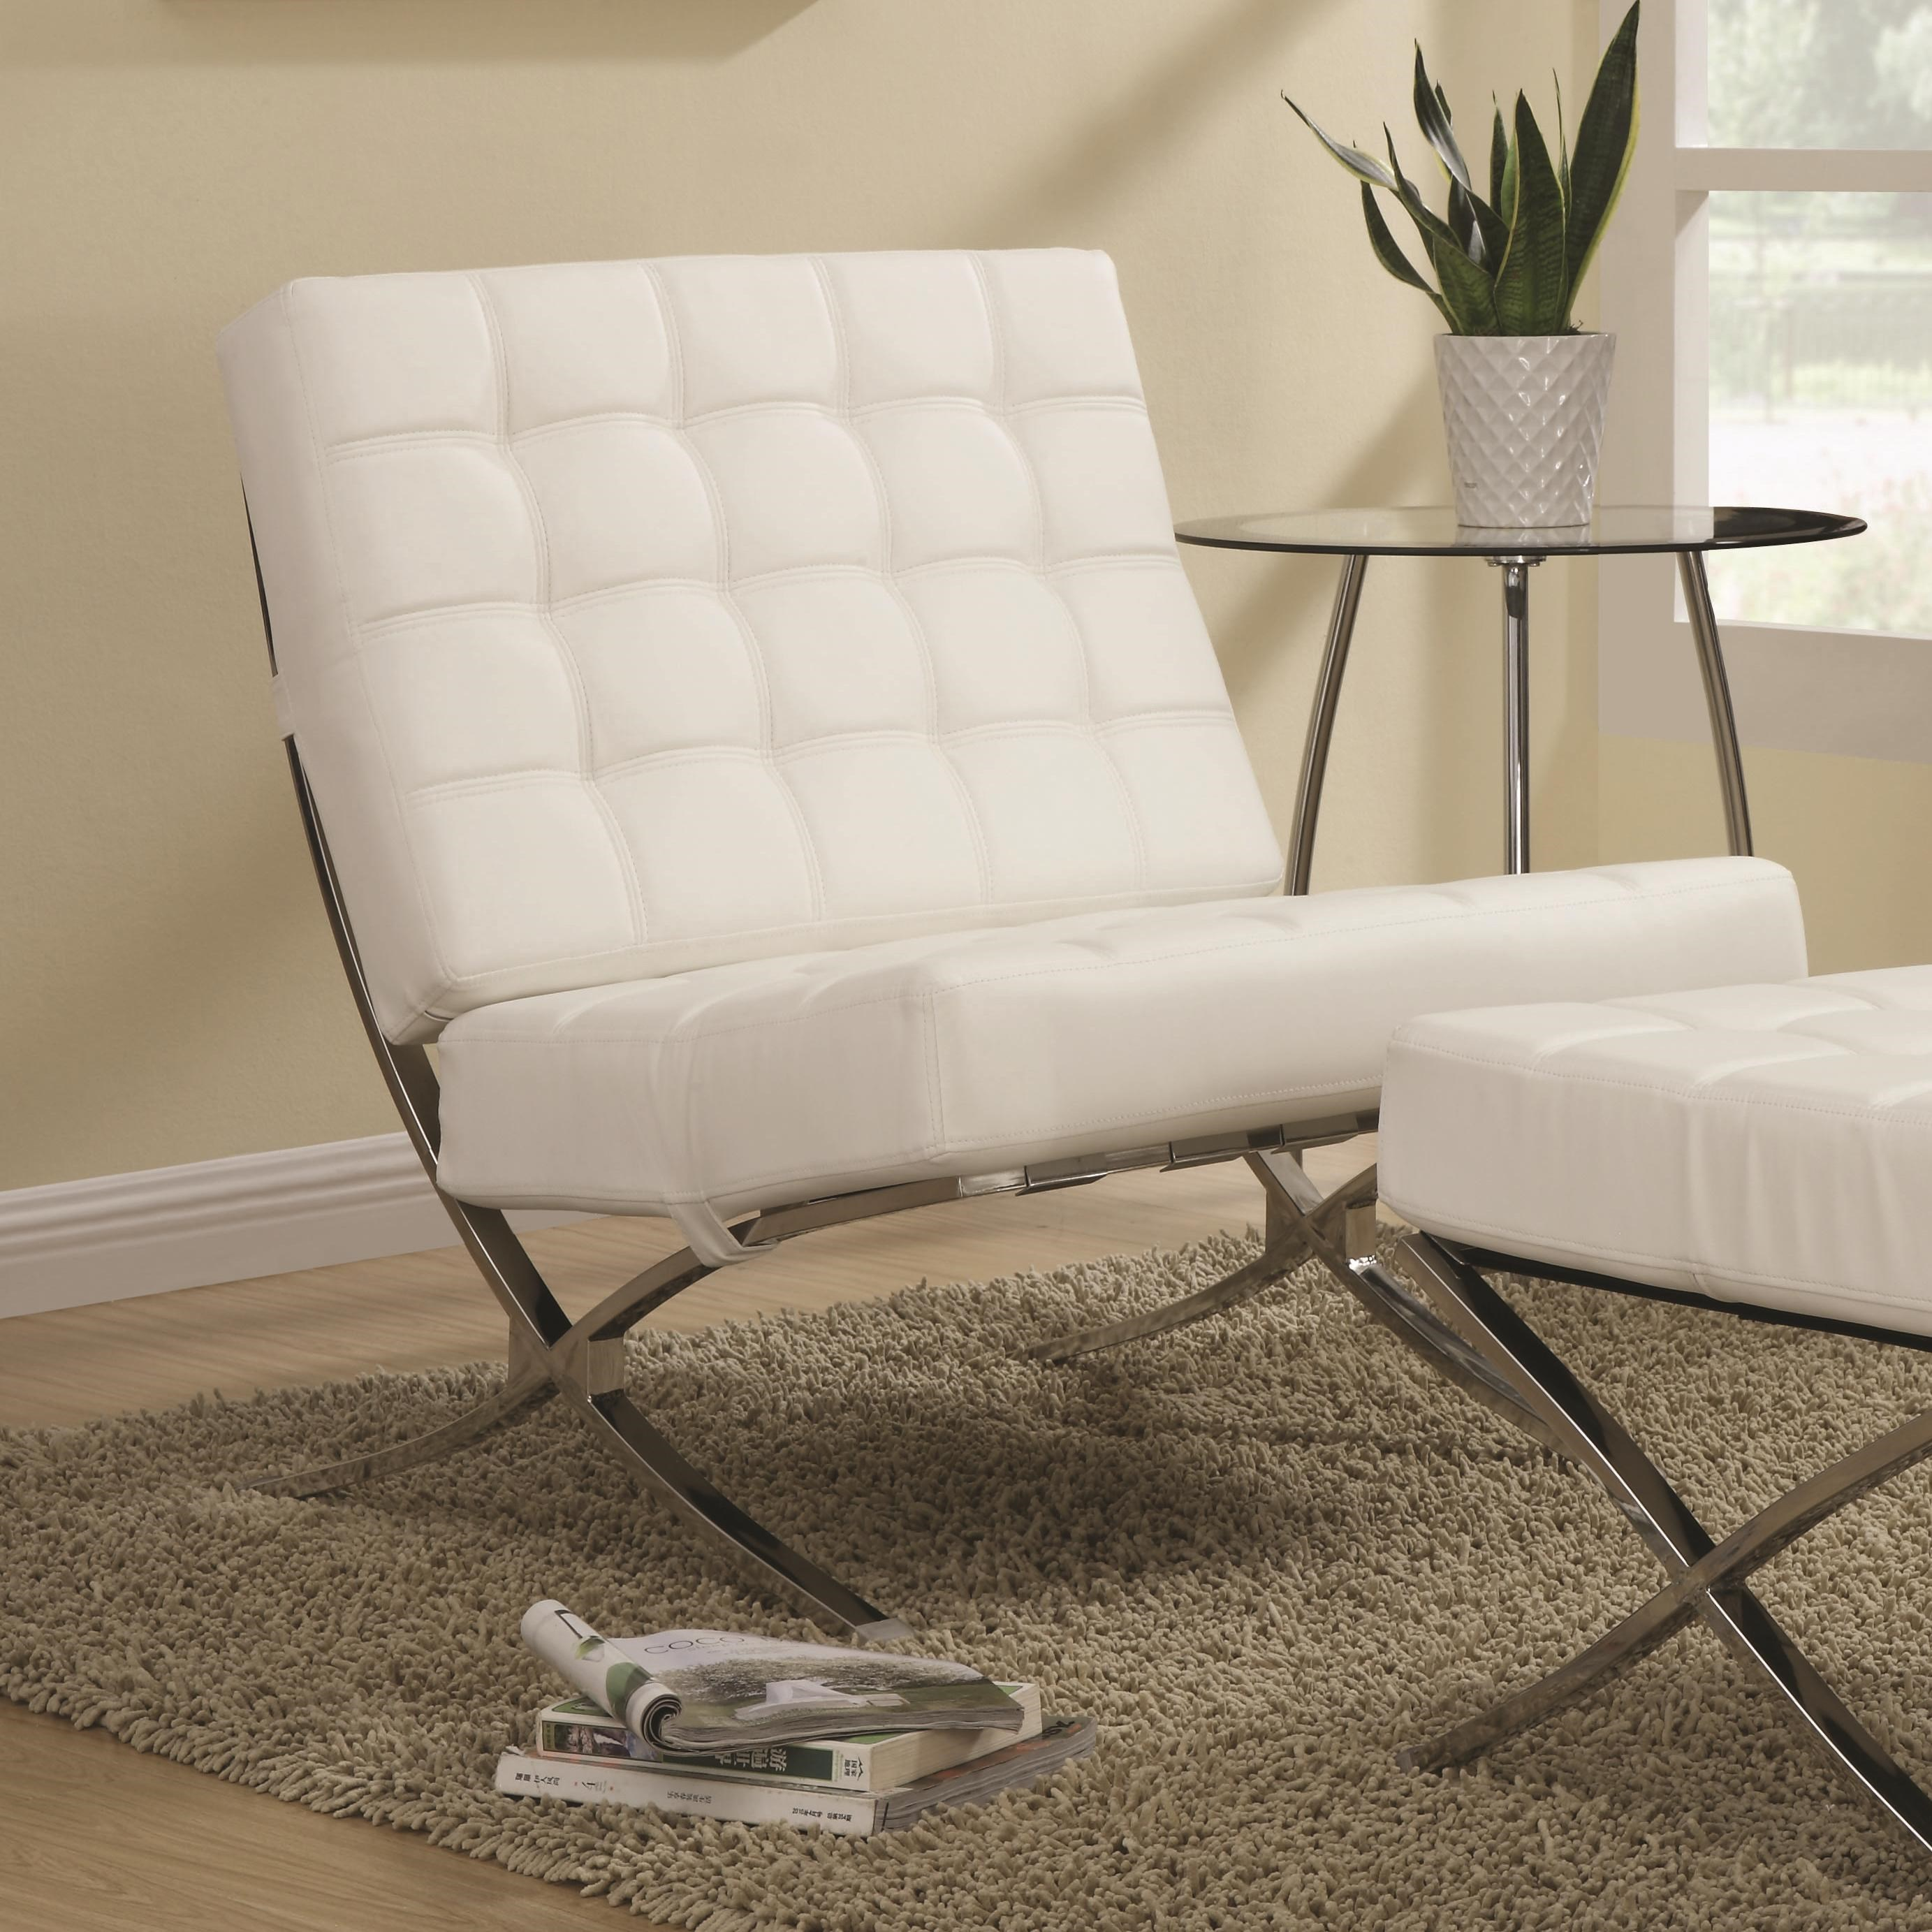 Beau Coaster Accent Seating Contemporary Waffle Accent Chair   Coaster Fine  Furniture